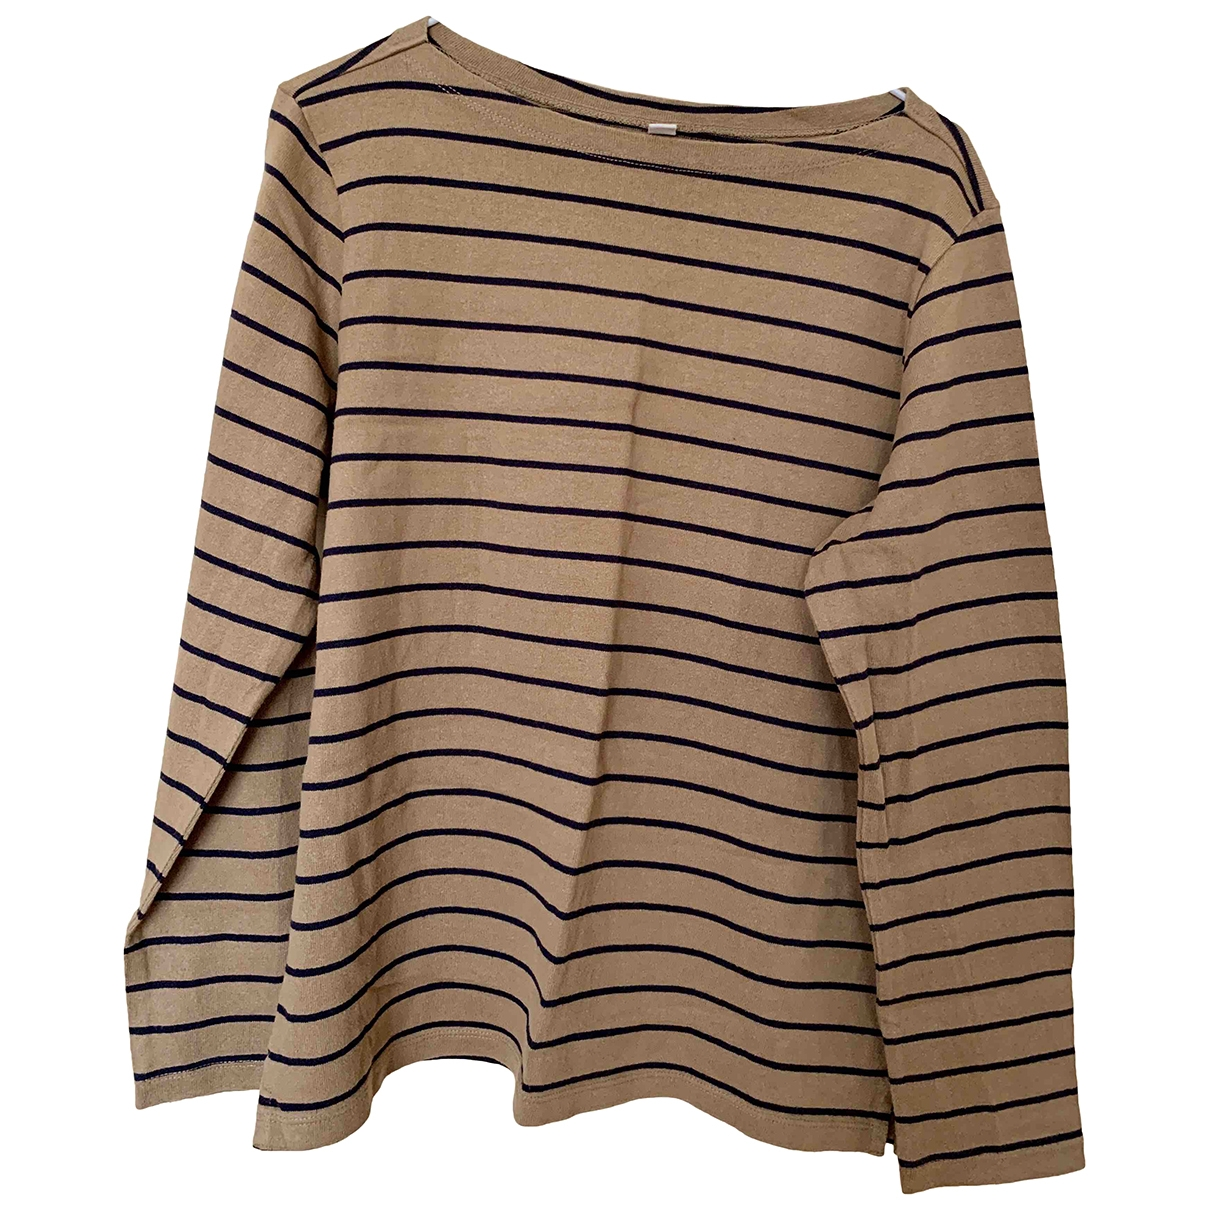 Uniqlo \N Camel Cotton  top for Women L International